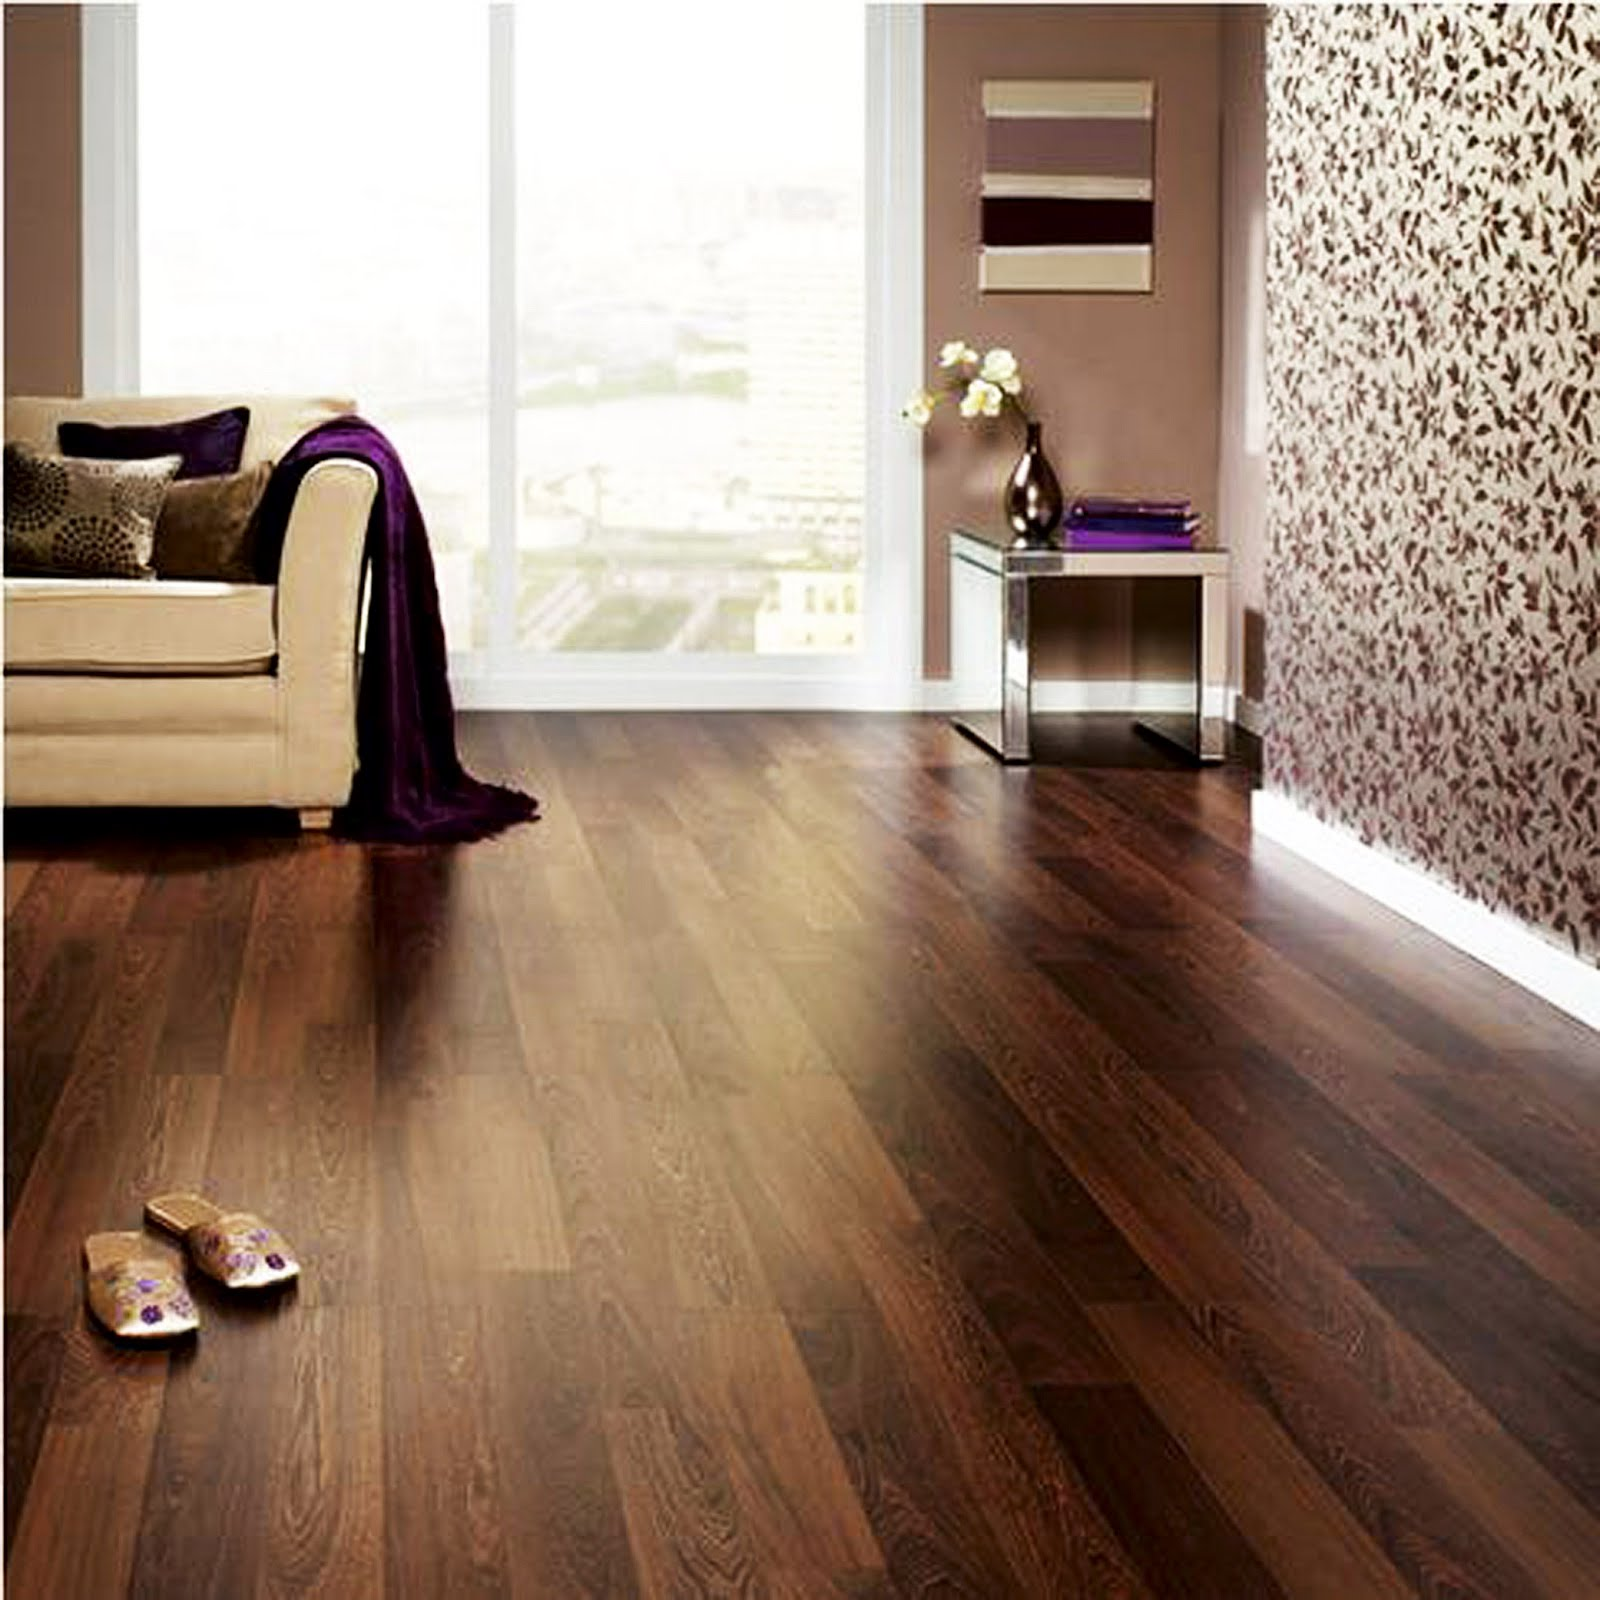 Best Engineered Hardwood Flooring Brands UK